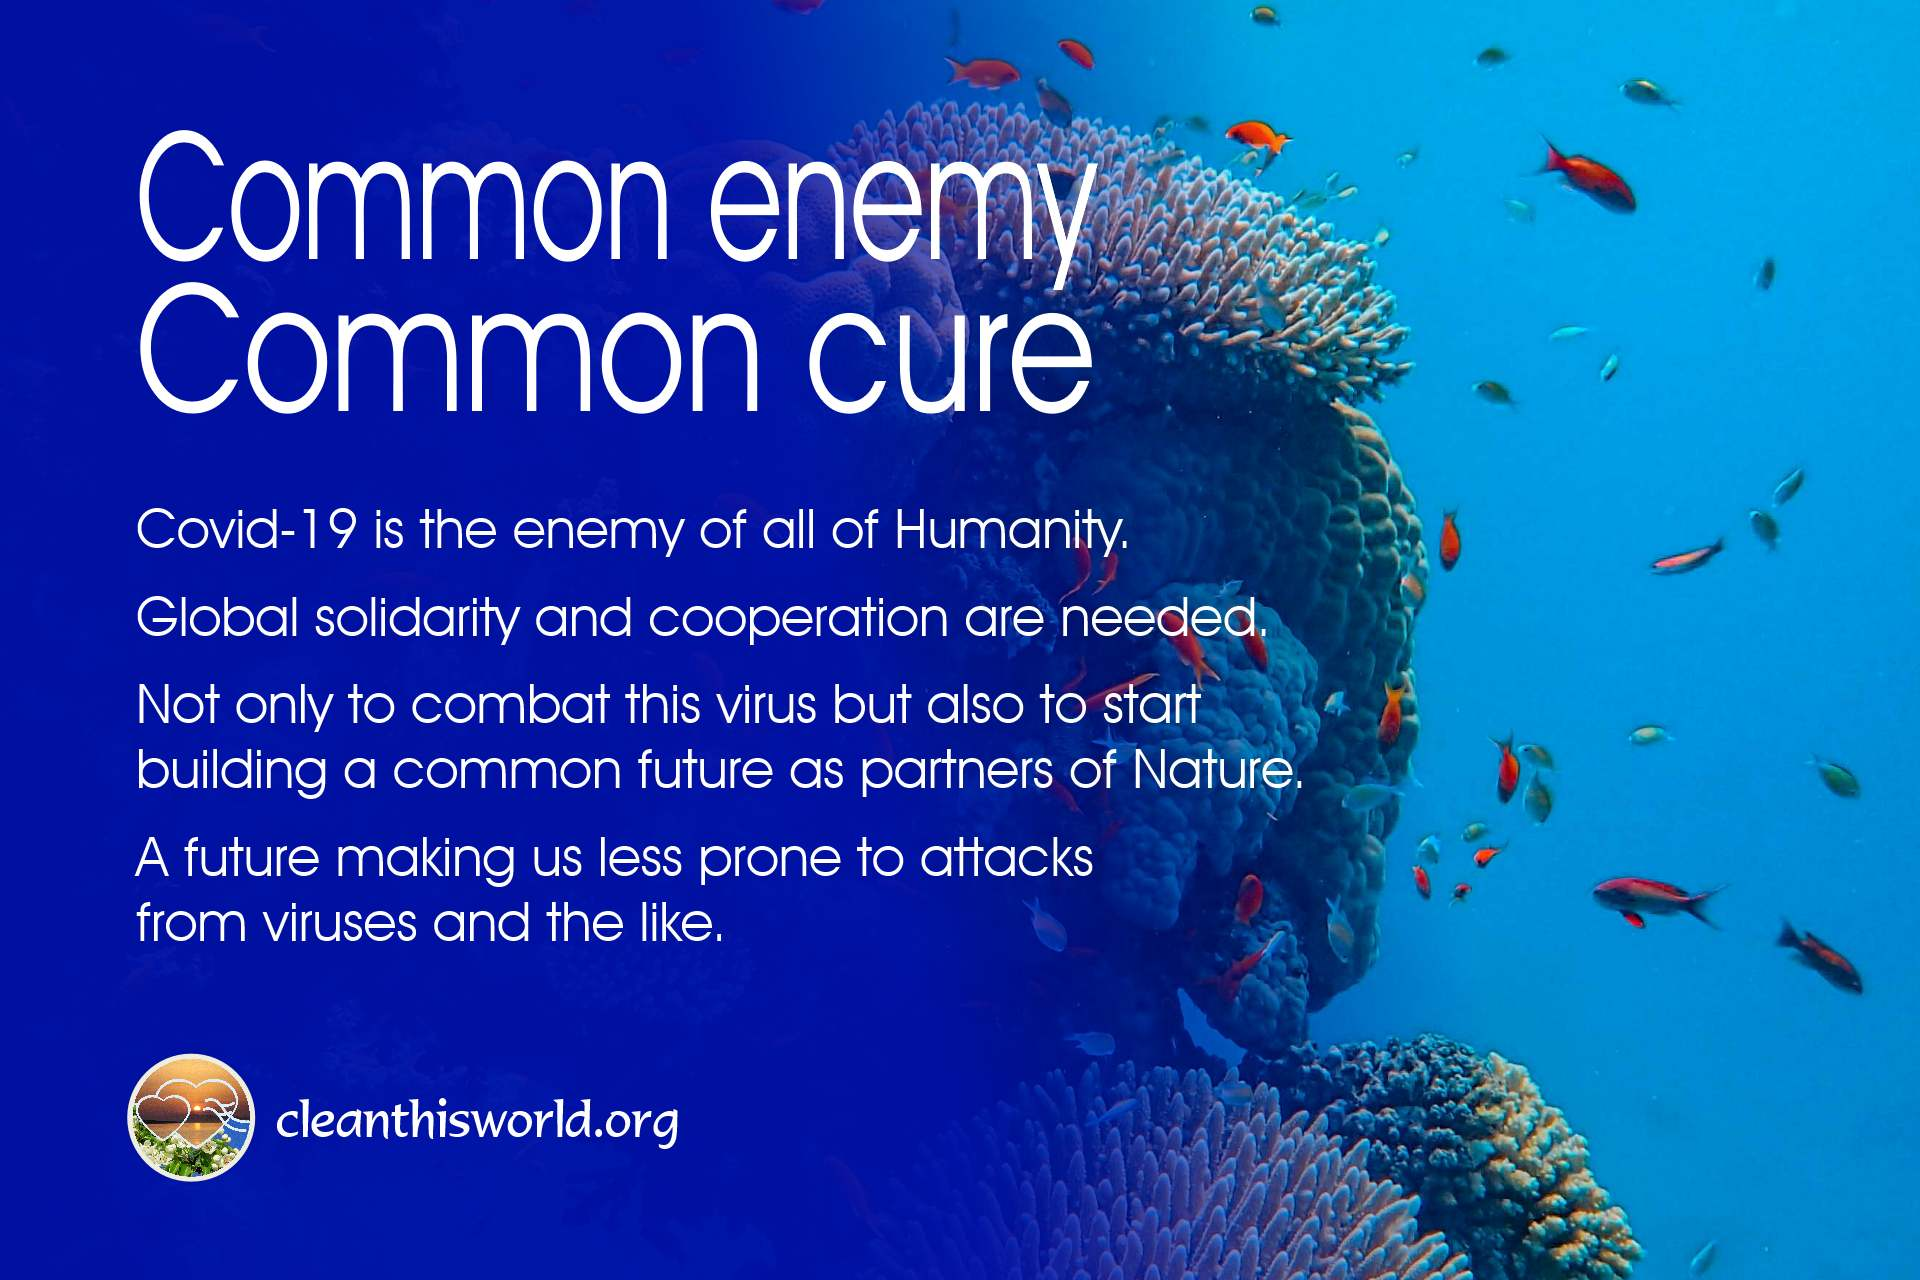 Common enemy - common cure